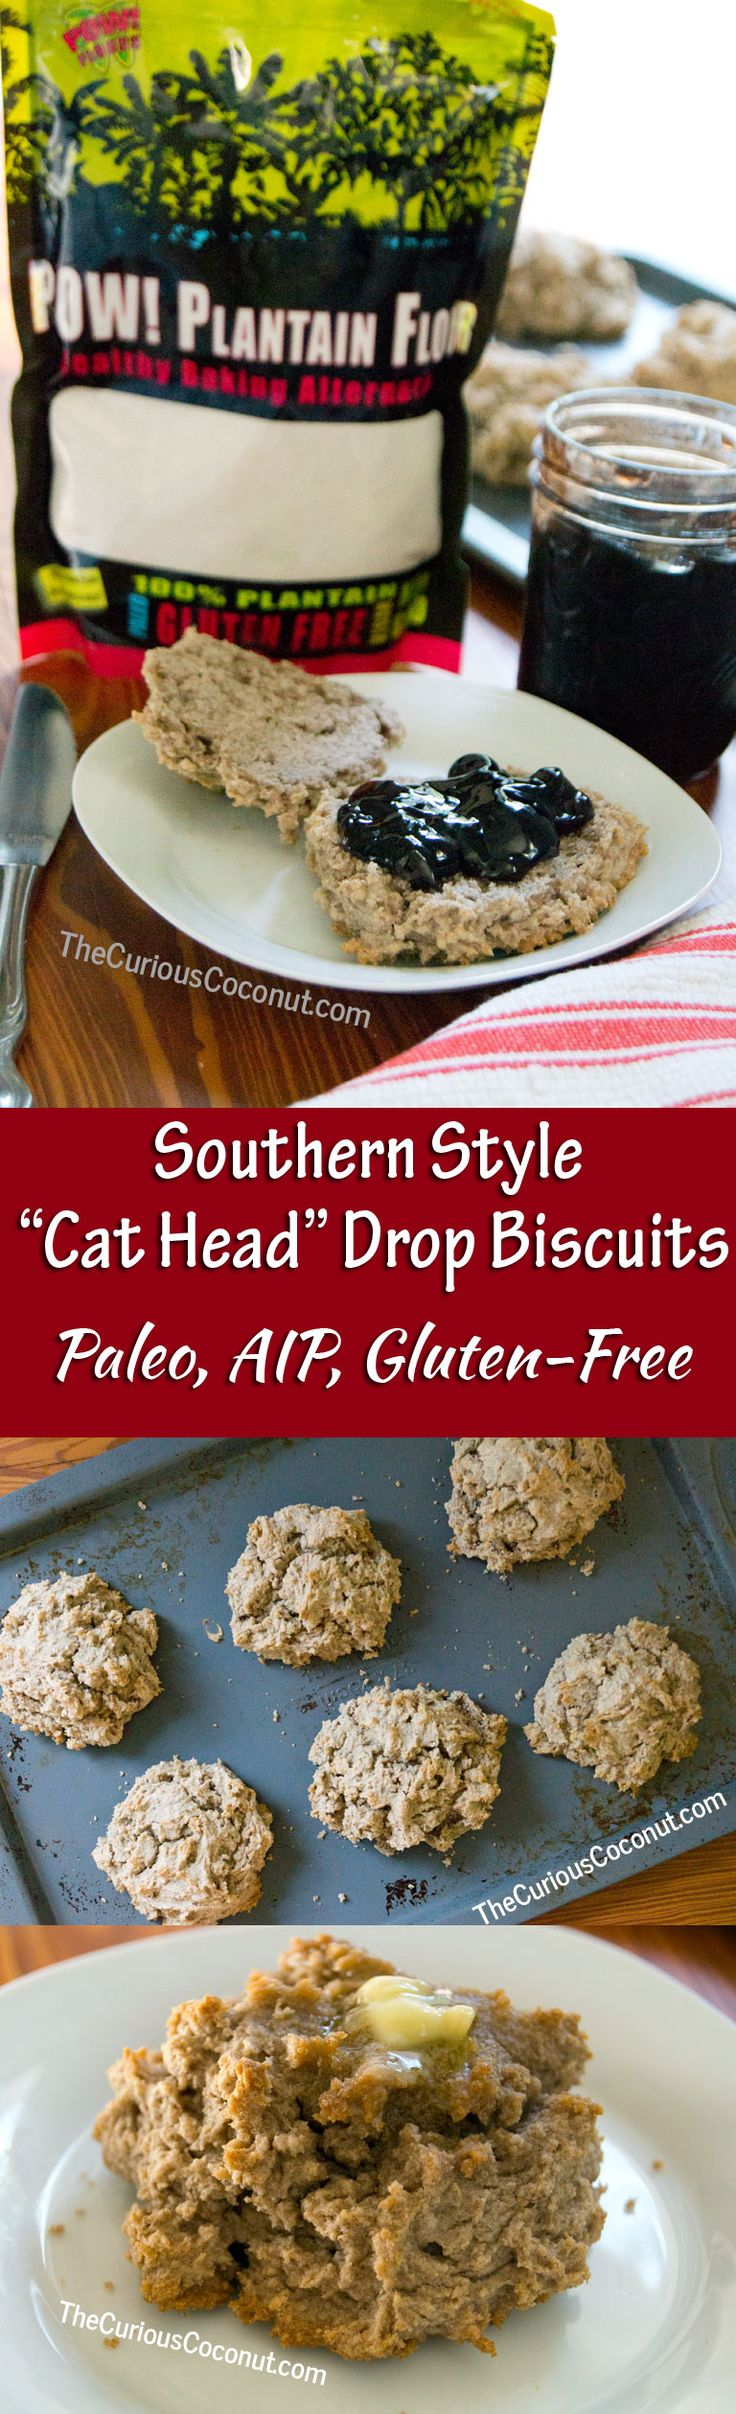 Cat-head biscuits are a Southern traditional drop biscuit. Easy, delicious, now gluten-free, Paleo, AIP with #plantainflour // TheCuriousCoconut.com (Vegan Gluten Free Biscuits)